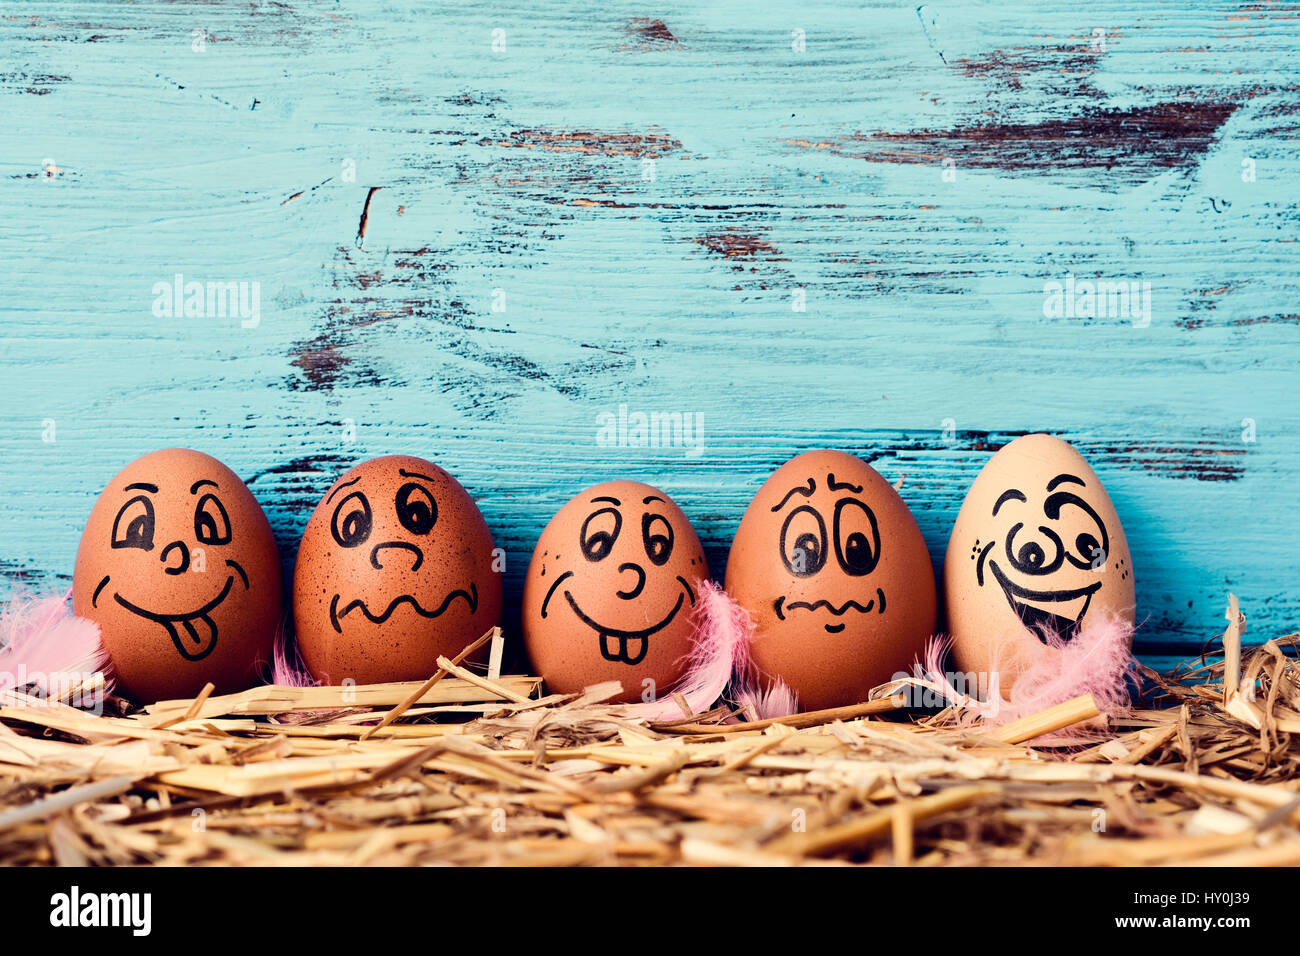 Some Brown Eggs With Funny Faces On A Pile Of Straw Against Blue Rustic Wooden Background Blank Space Above Them